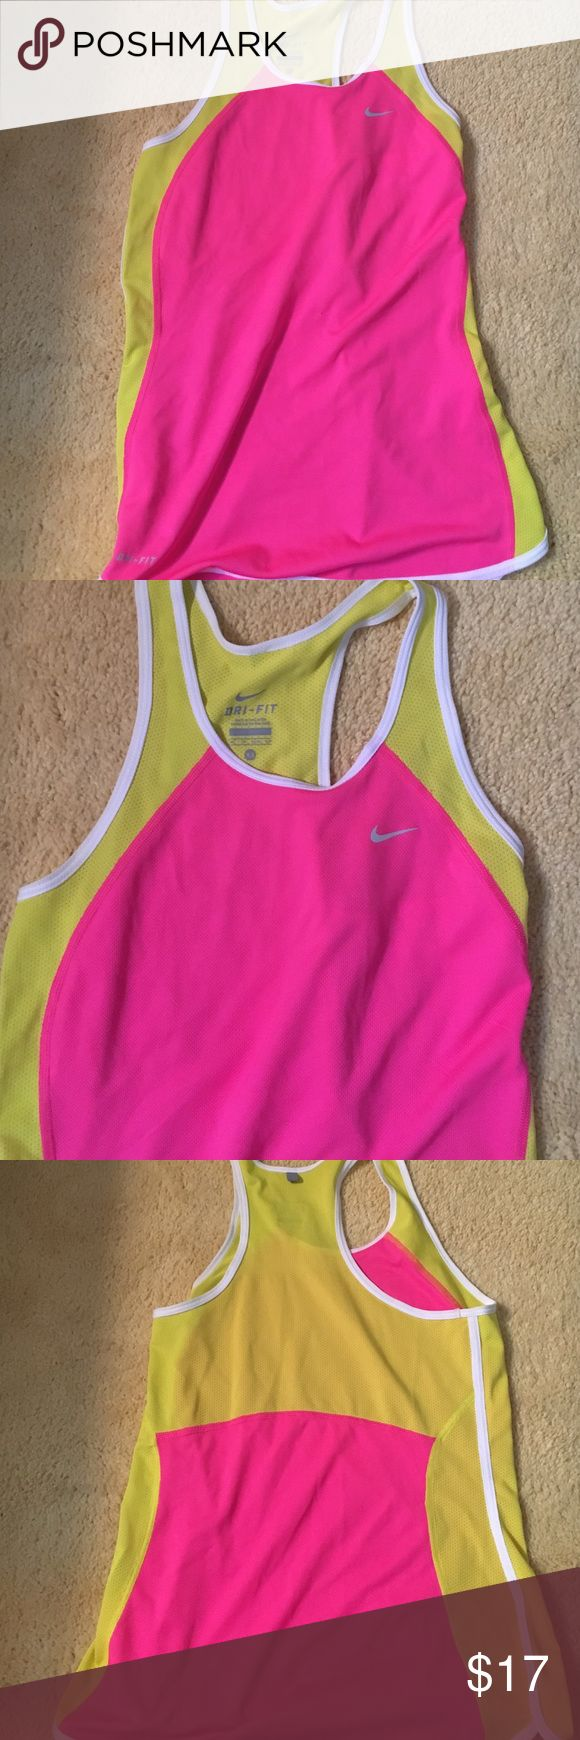 Nike razorback tank This is a nike dry fit razorback tank. It is highlighter pink and yellow. Only worn once! Nike Tops Tank Tops